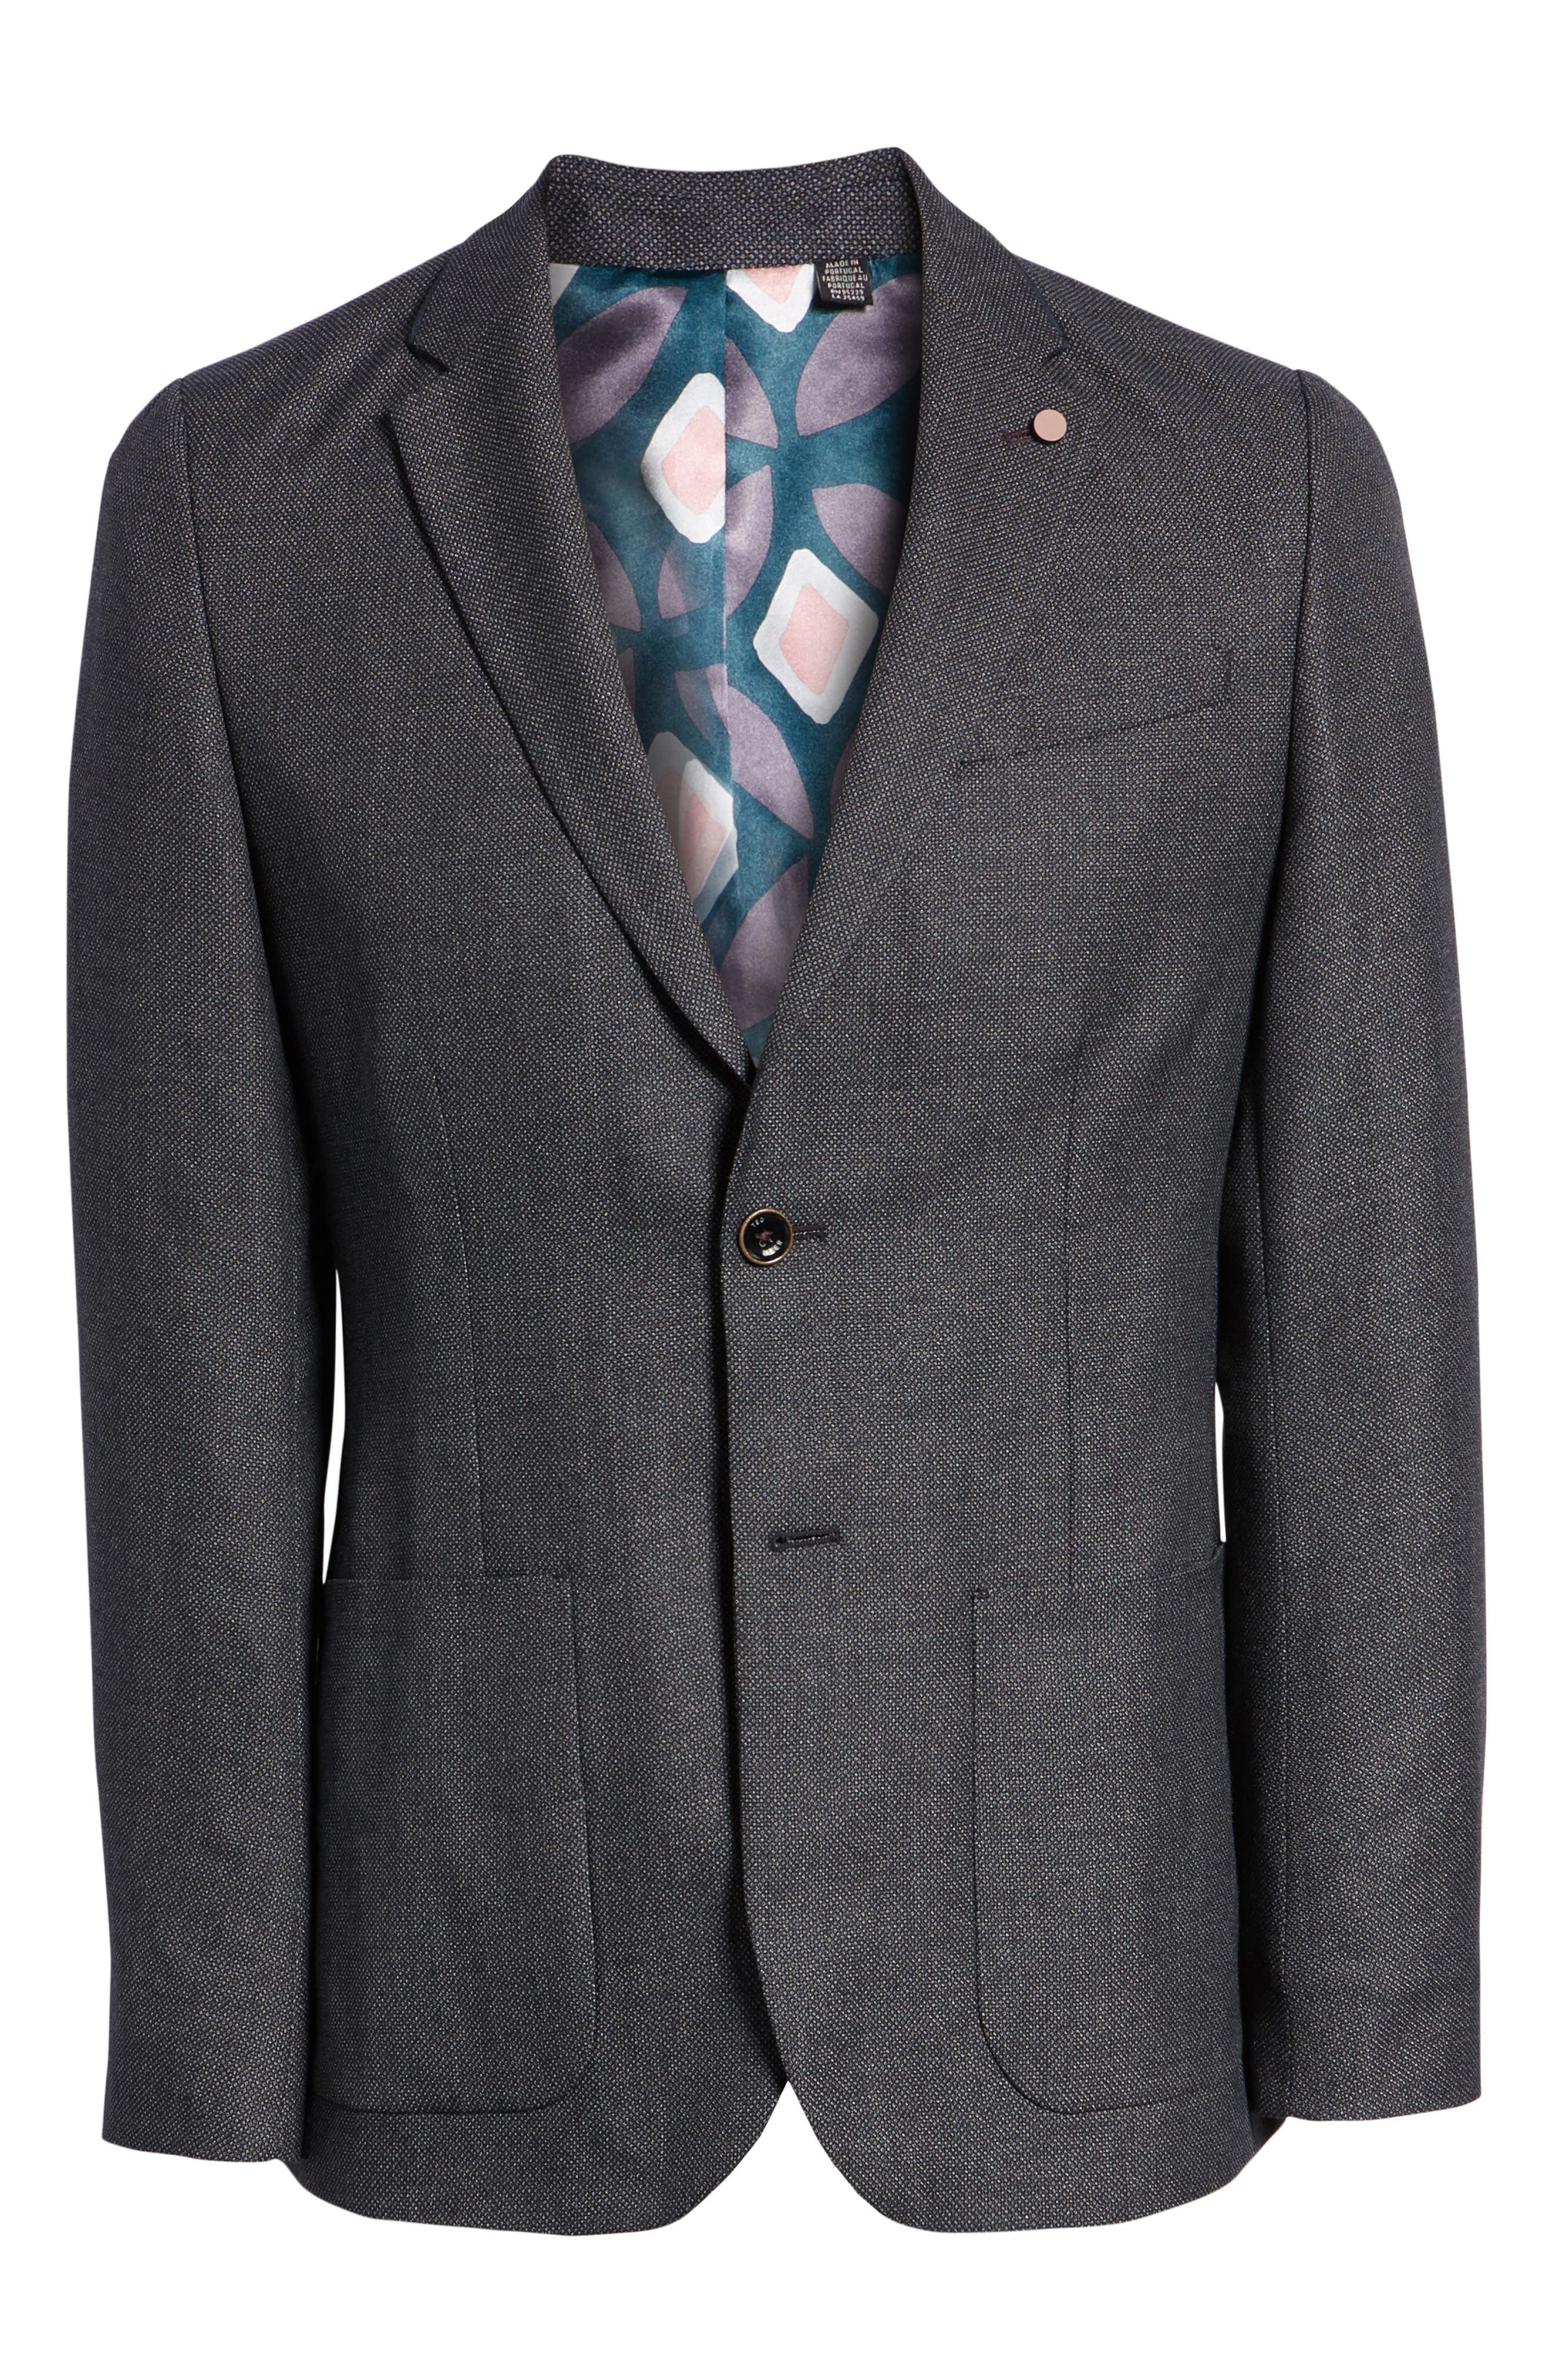 Pebble Slim Fit Bird's Eye Blazer,                             Alternate thumbnail 5, color,                             NAVY